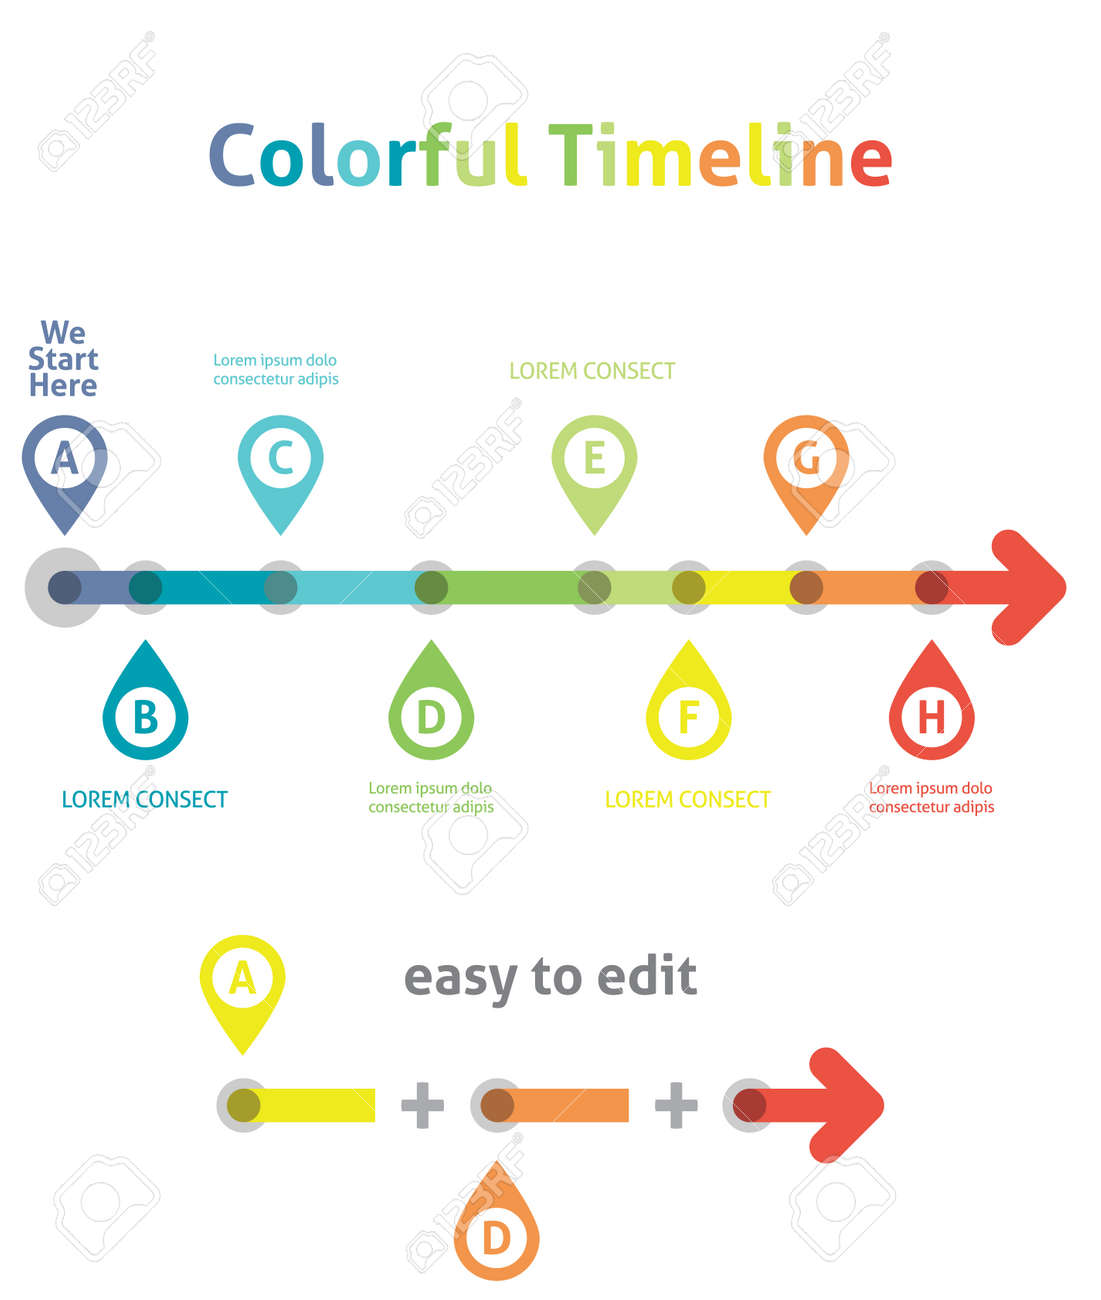 Colorful Timeline Infographic Template Easy To Edit Royalty Free - Free timeline infographic template